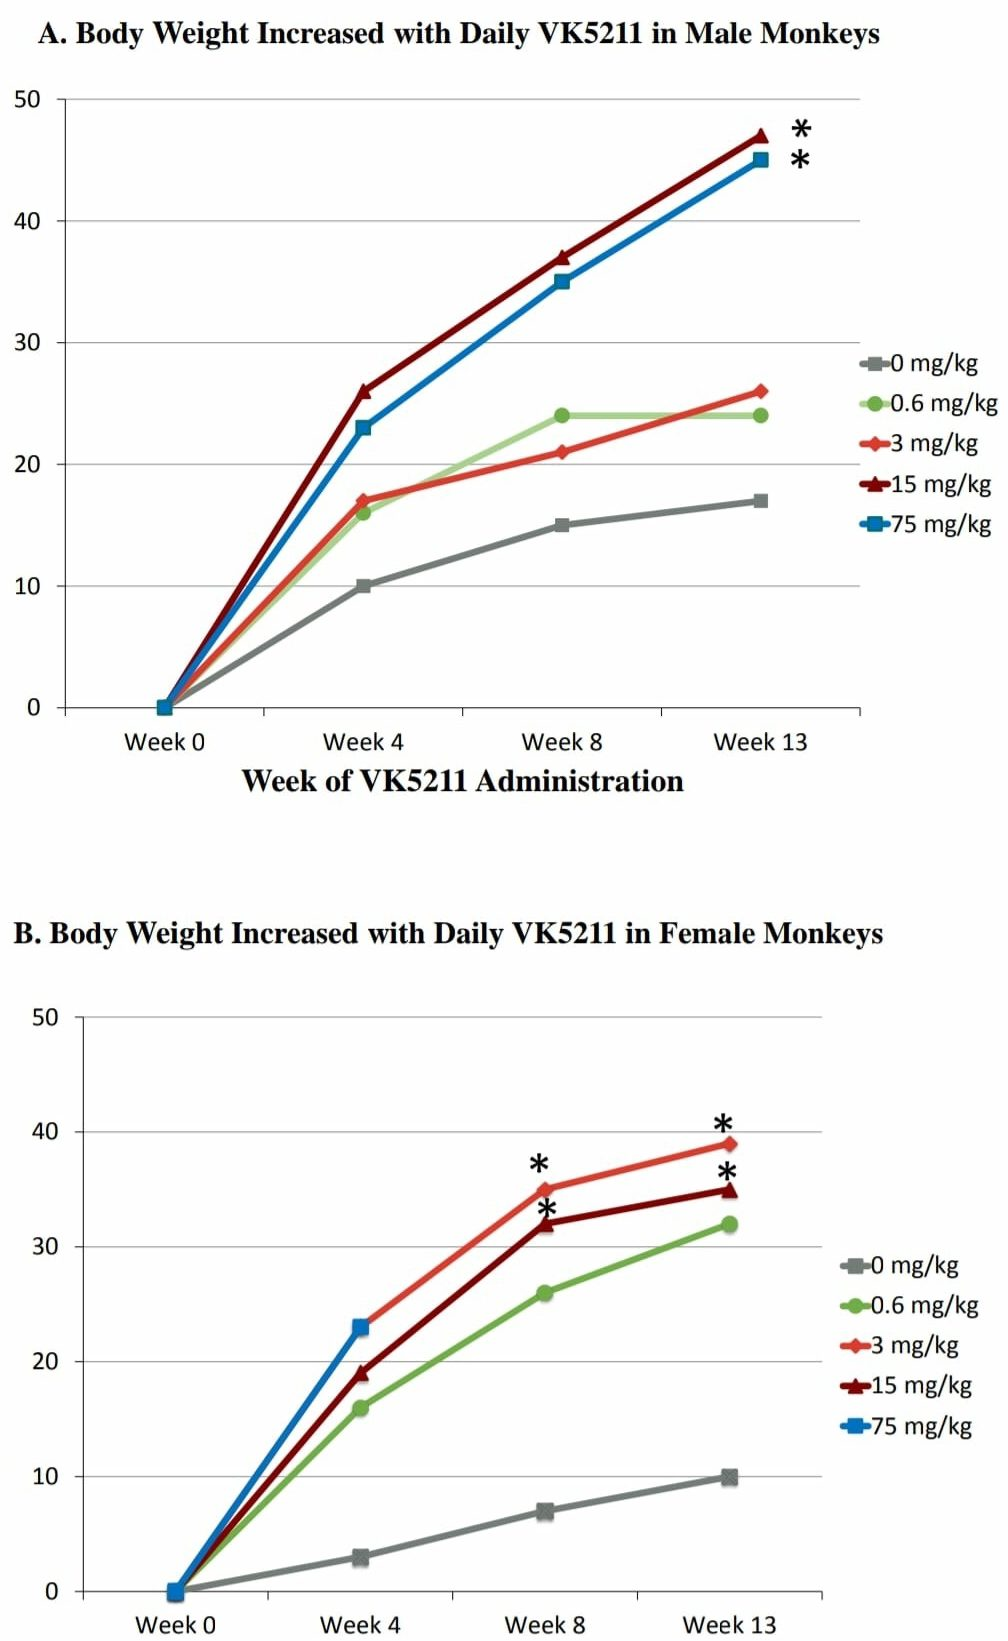 Preclinical LGD-4033 Study On Primates - Substantial Increases In Lean Body Mass At 13 Weeks